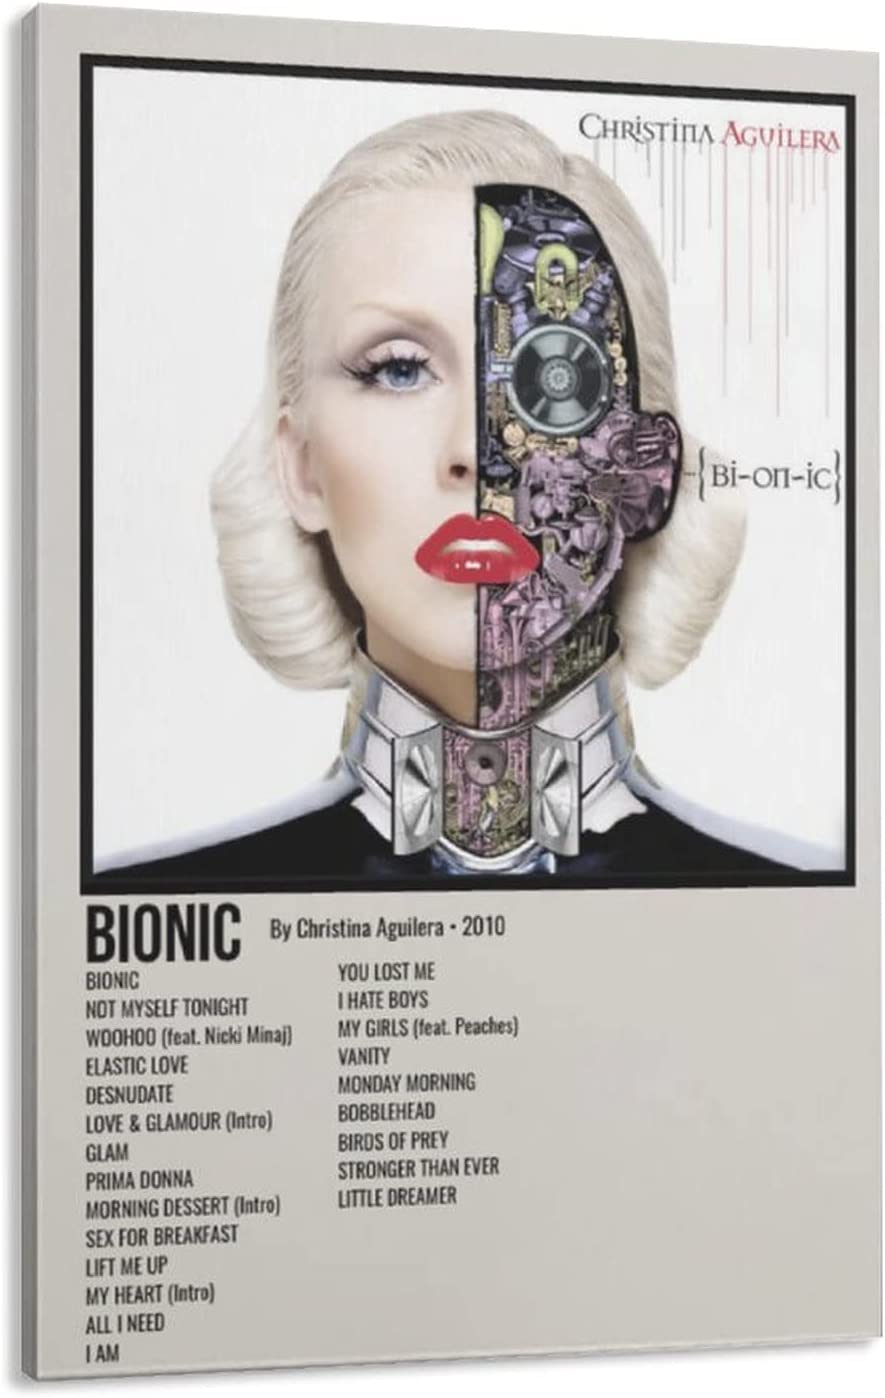 Bionic Christina Aguilera 2010 Canvas Poster Prin Art Our shop OFFers the best service Decor Wall Trust